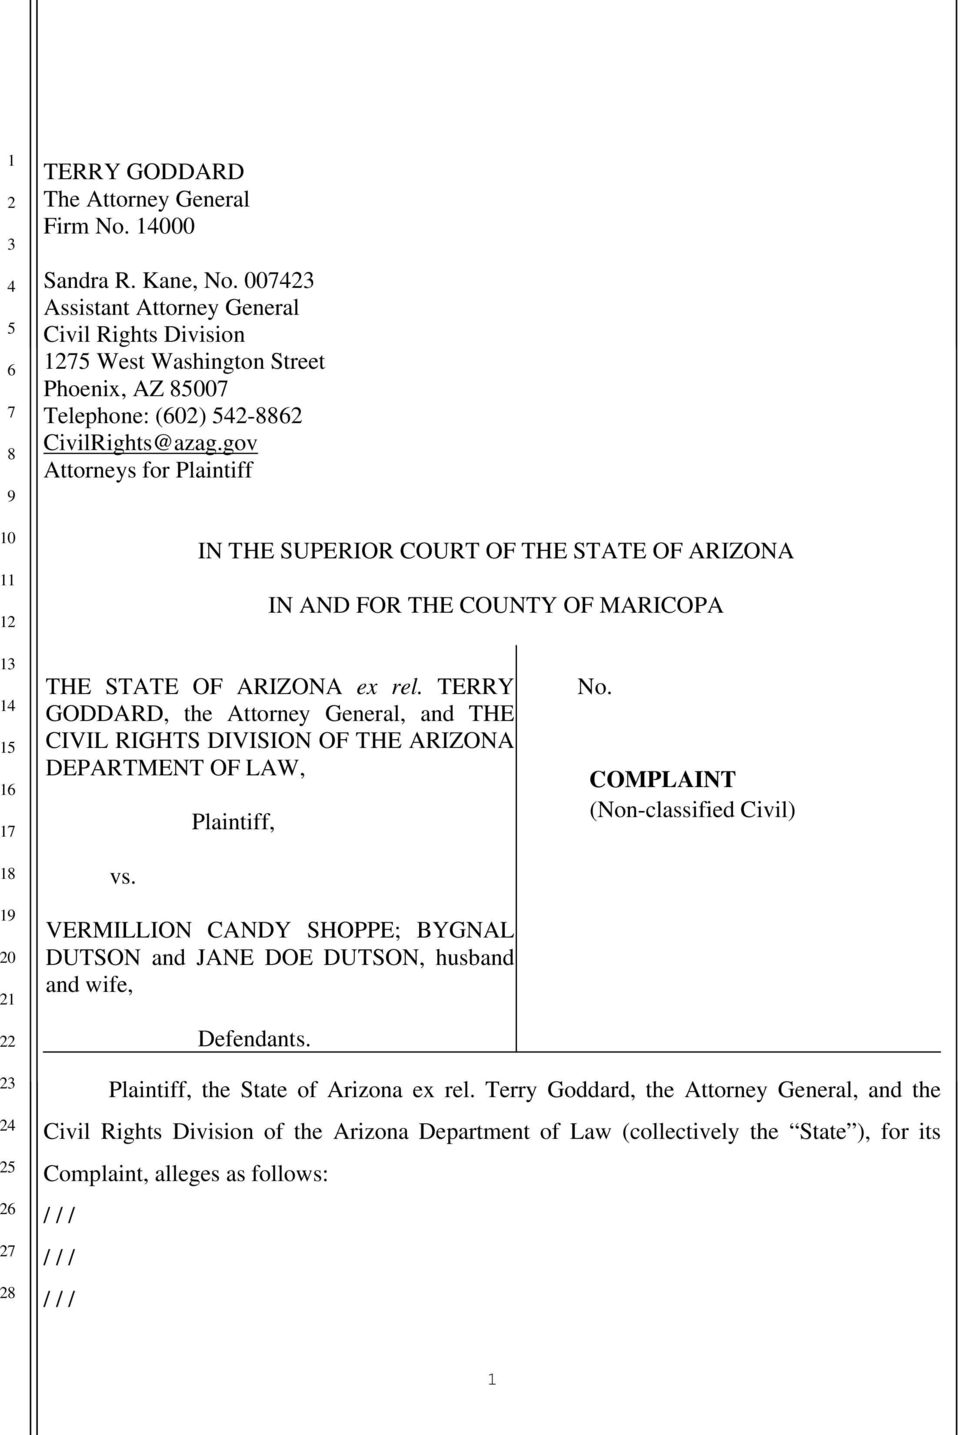 TERRY GODDARD, the Attorney General, and THE CIVIL RIGHTS DIVISION OF THE ARIZONA DEPARTMENT OF LAW, vs.